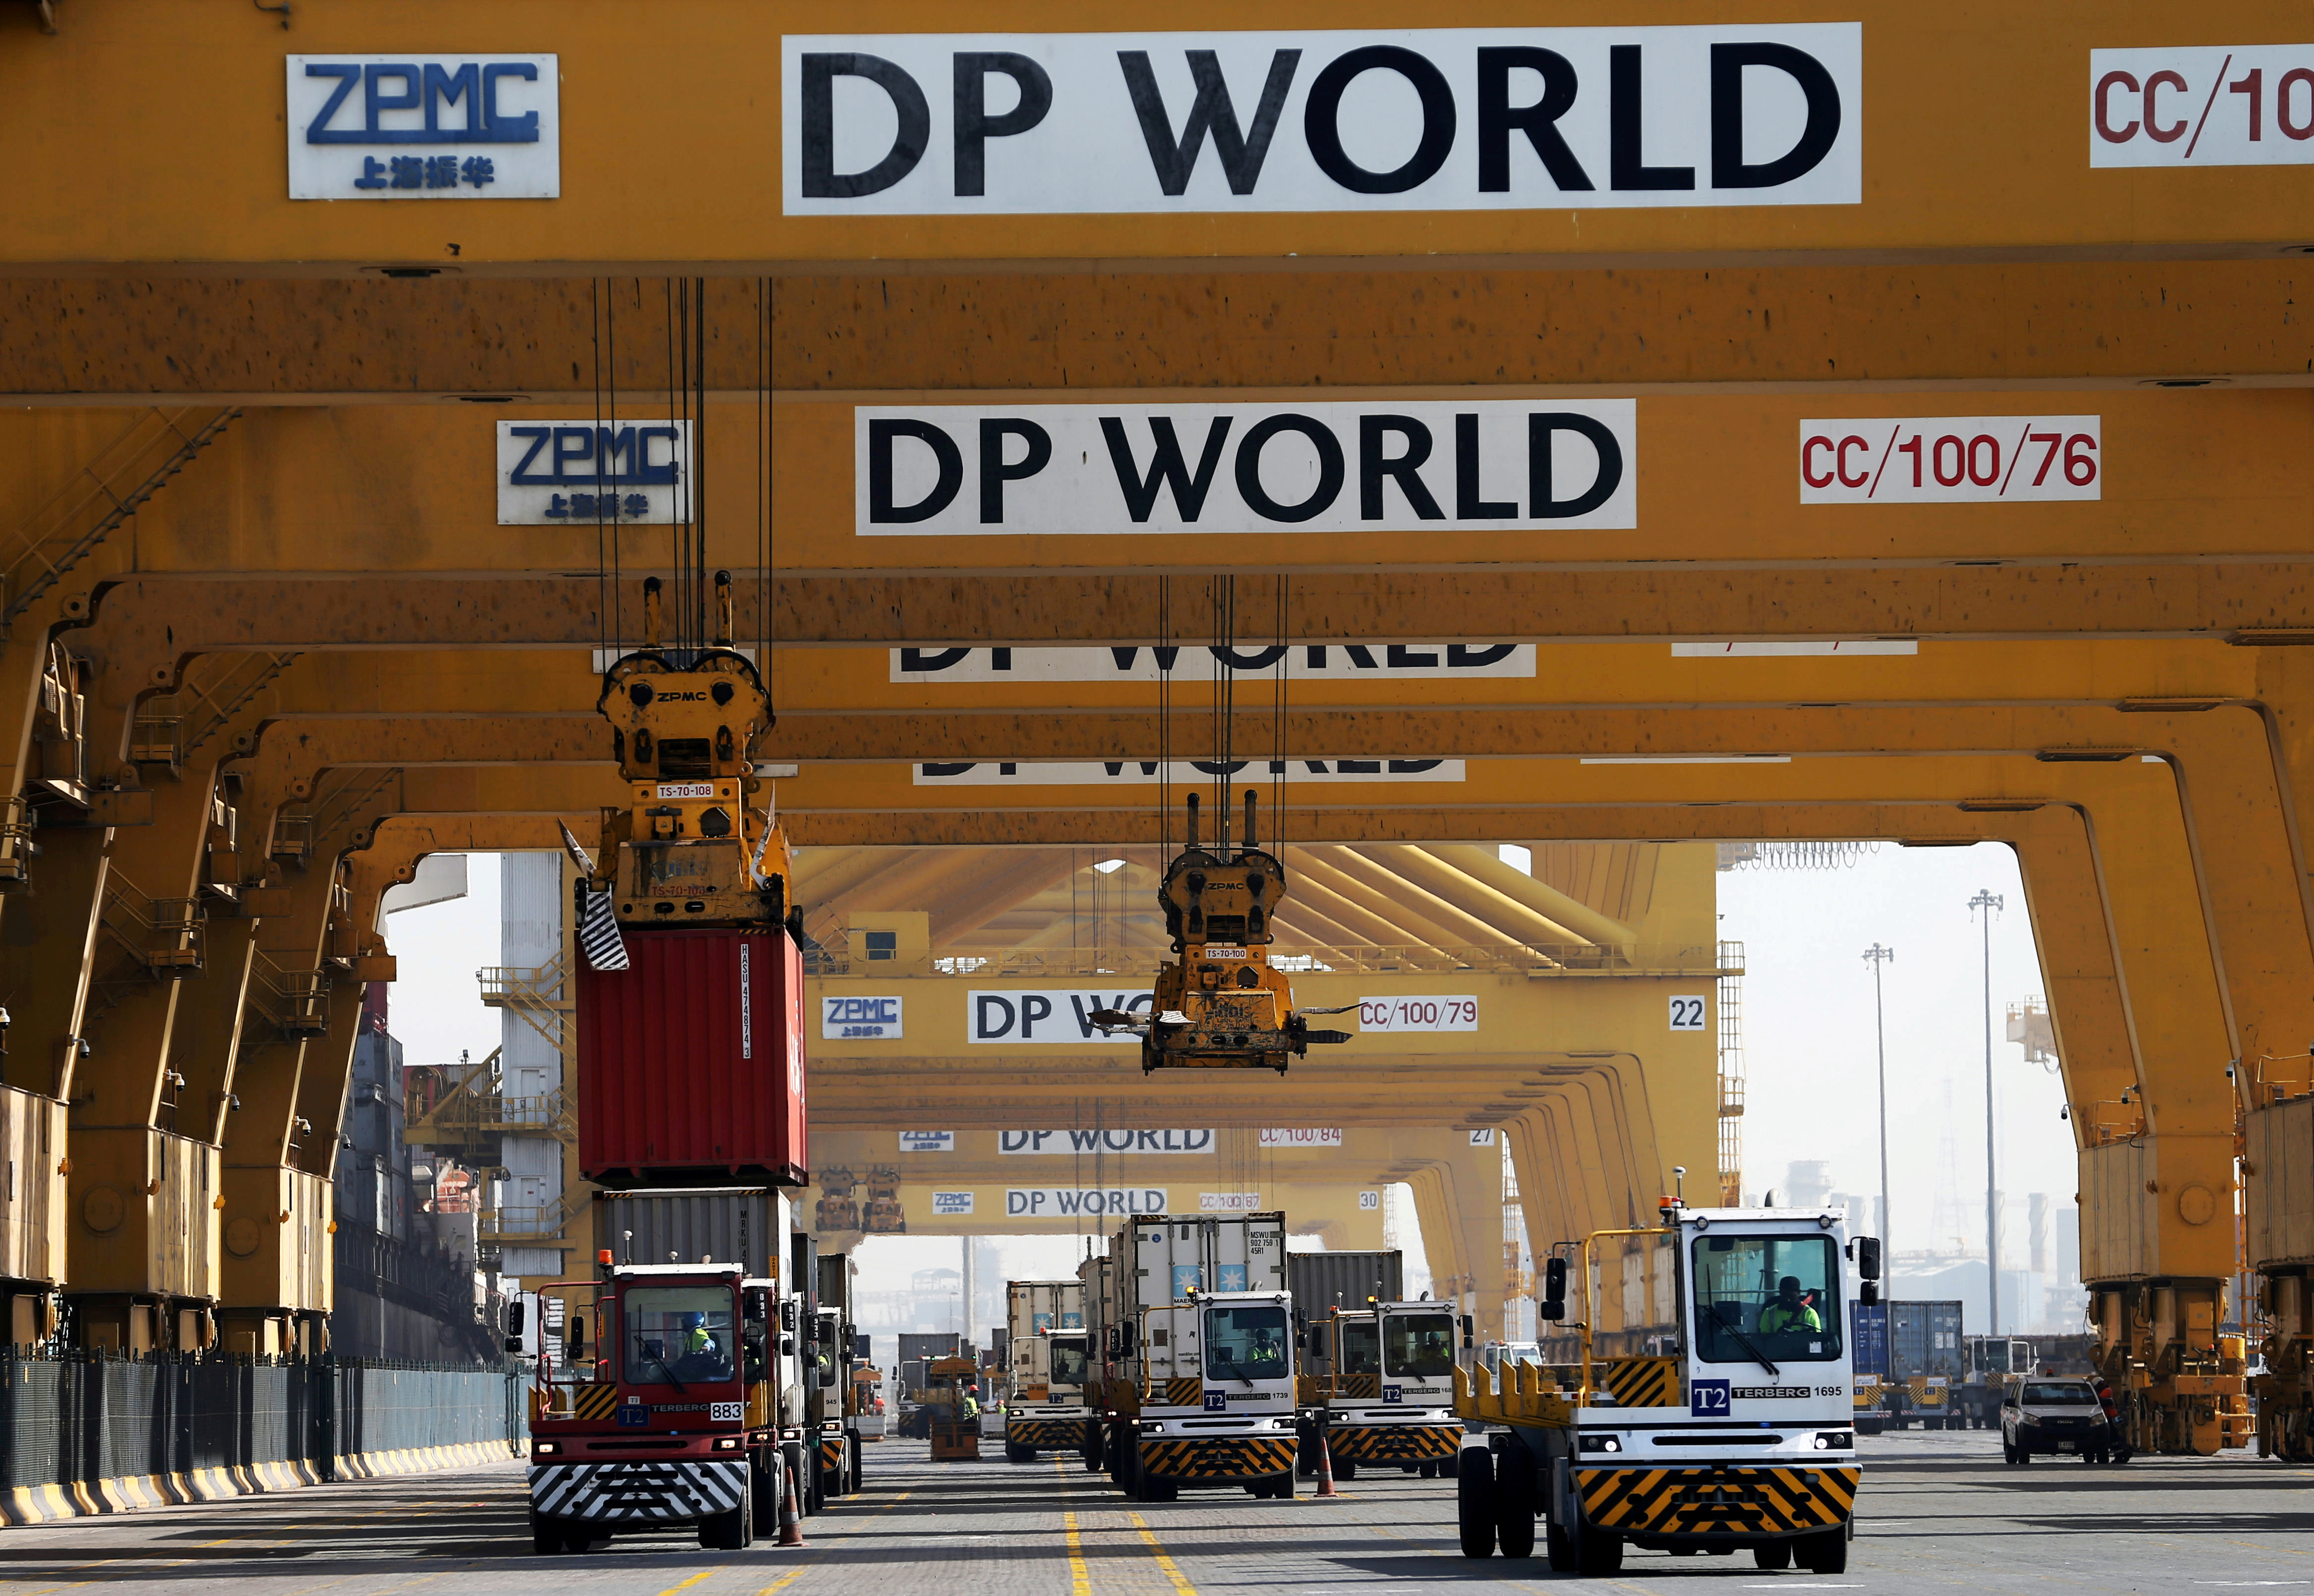 Terminal tractors line up to load containers into a cargo ship at DP World's fully automated Terminal 2 at Jebel Ali Port in Dubai, United Arab Emirates, December 27, 2018. REUTERS/ Hamad I Mohammed/File Photo